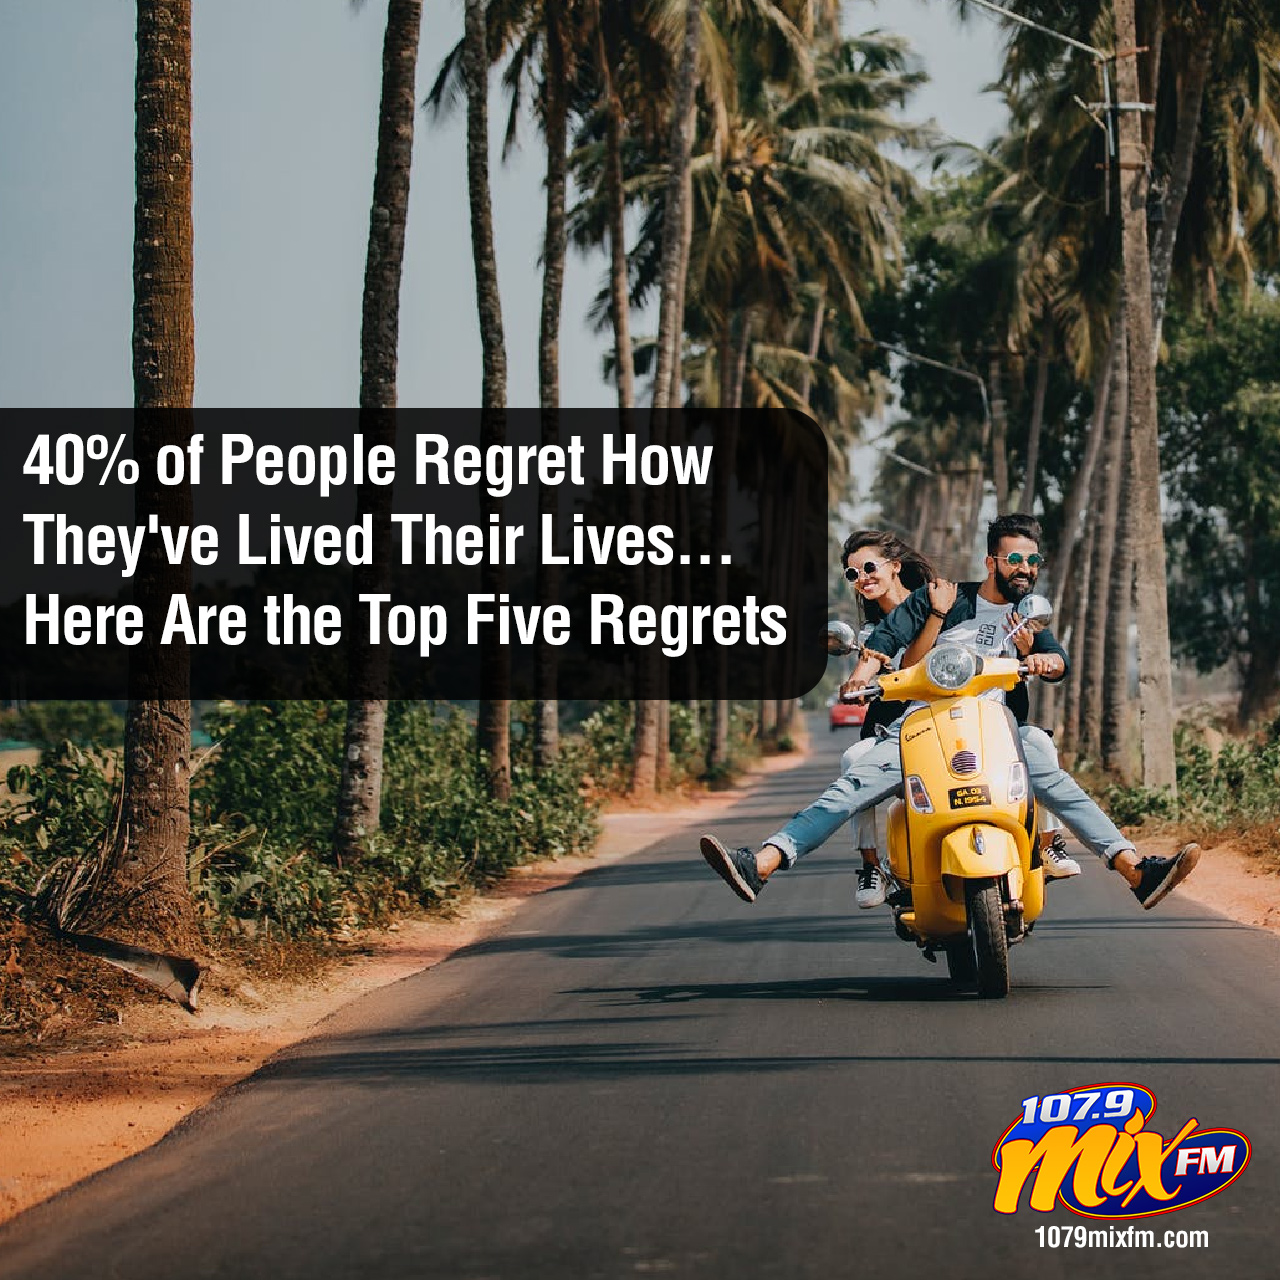 40% of People Regret How They've Lived Their Lives . . . Here Are the Top Five Regrets